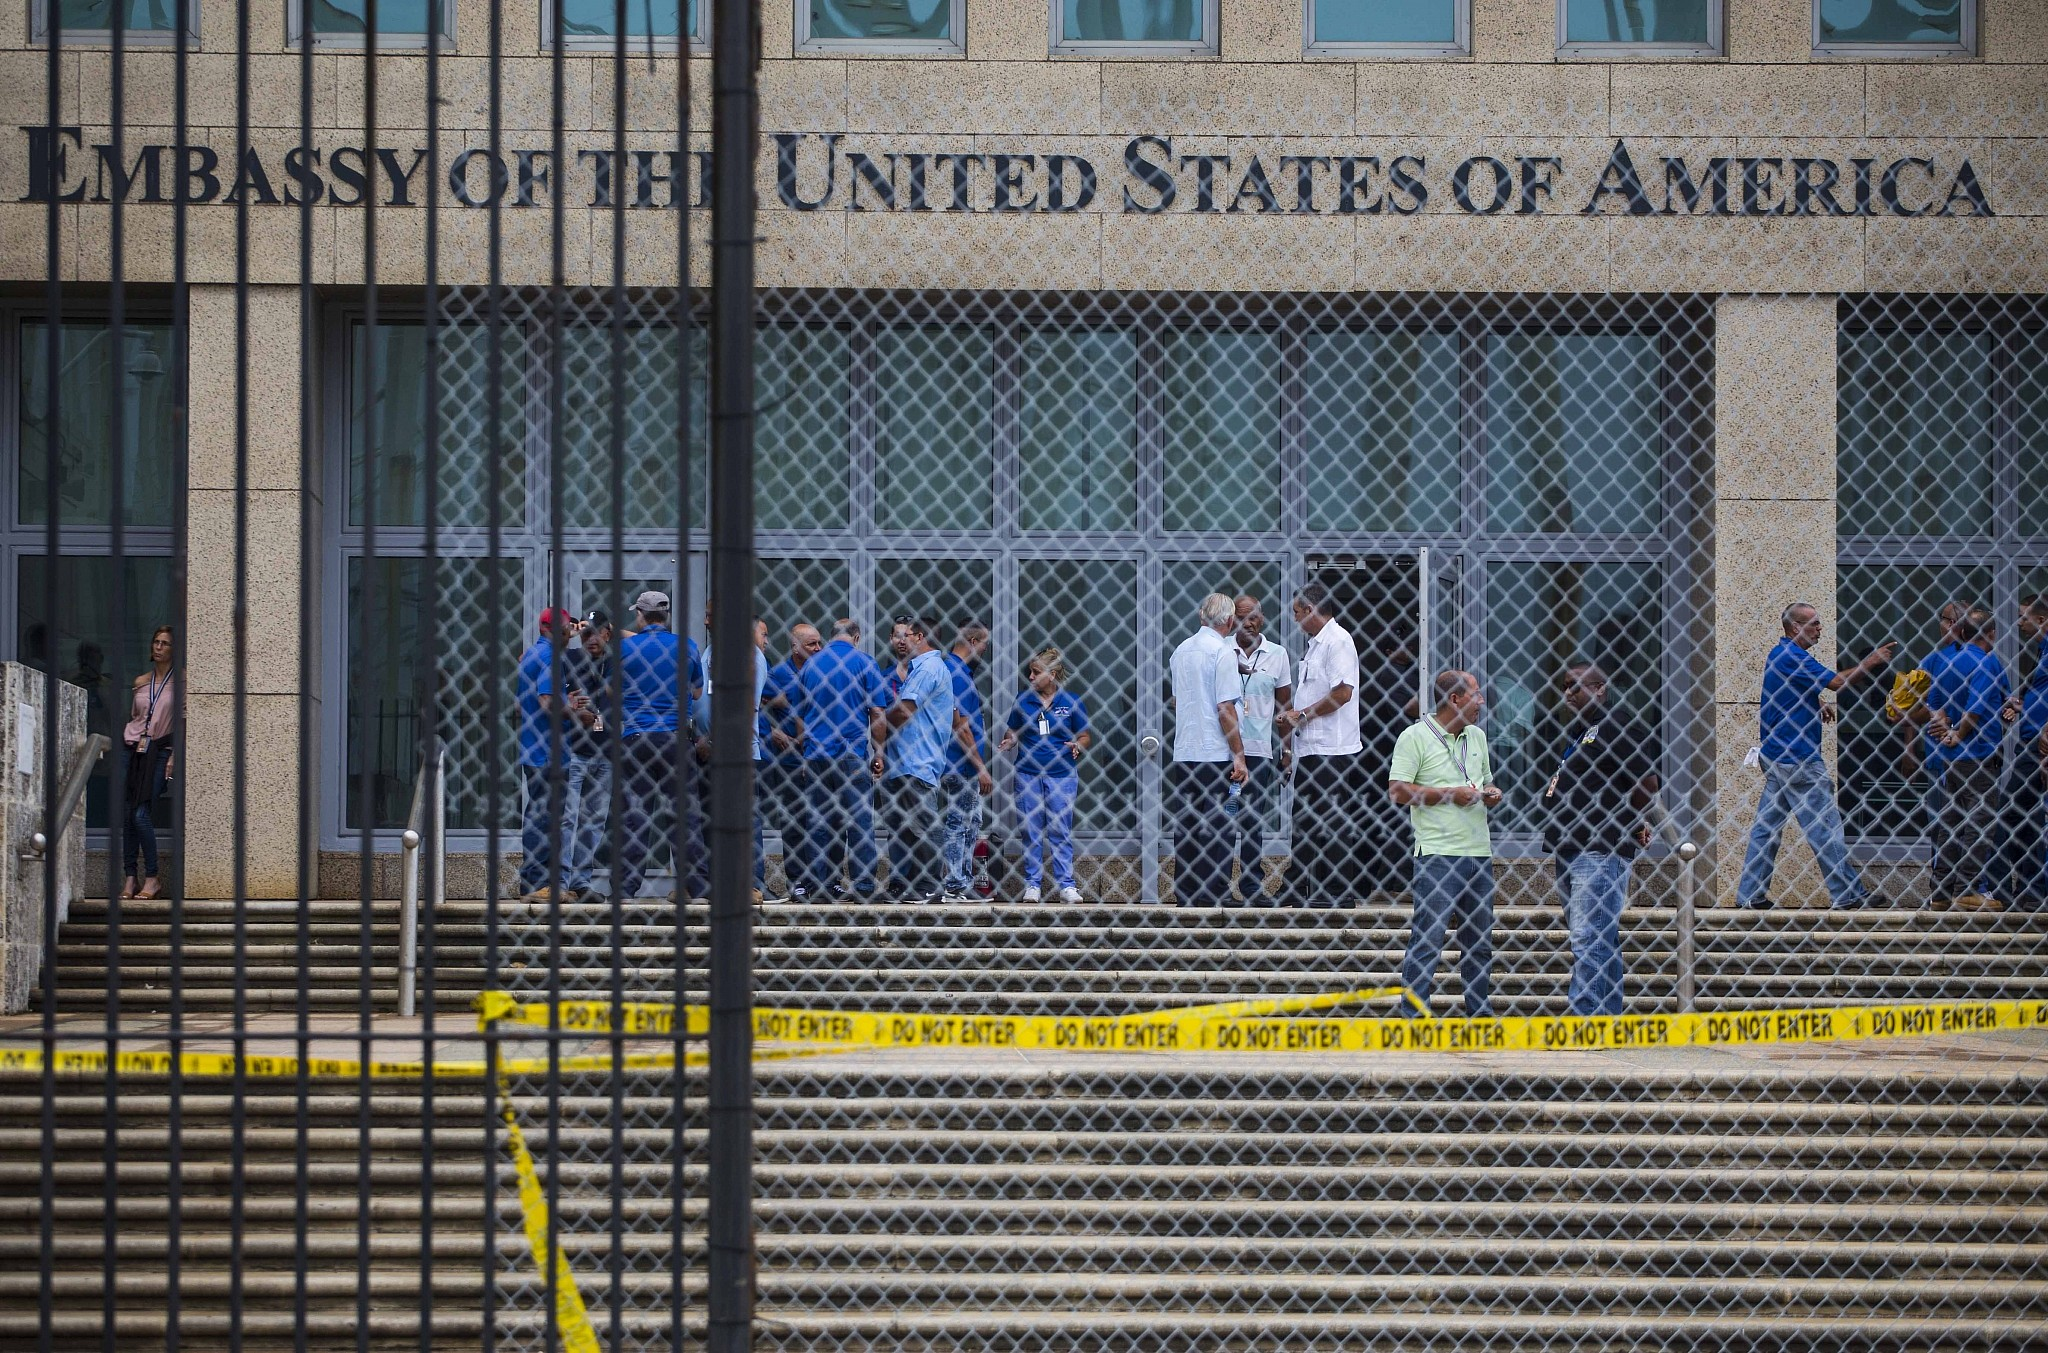 USA  cuts embassy staff in Cuba after mystery attacks